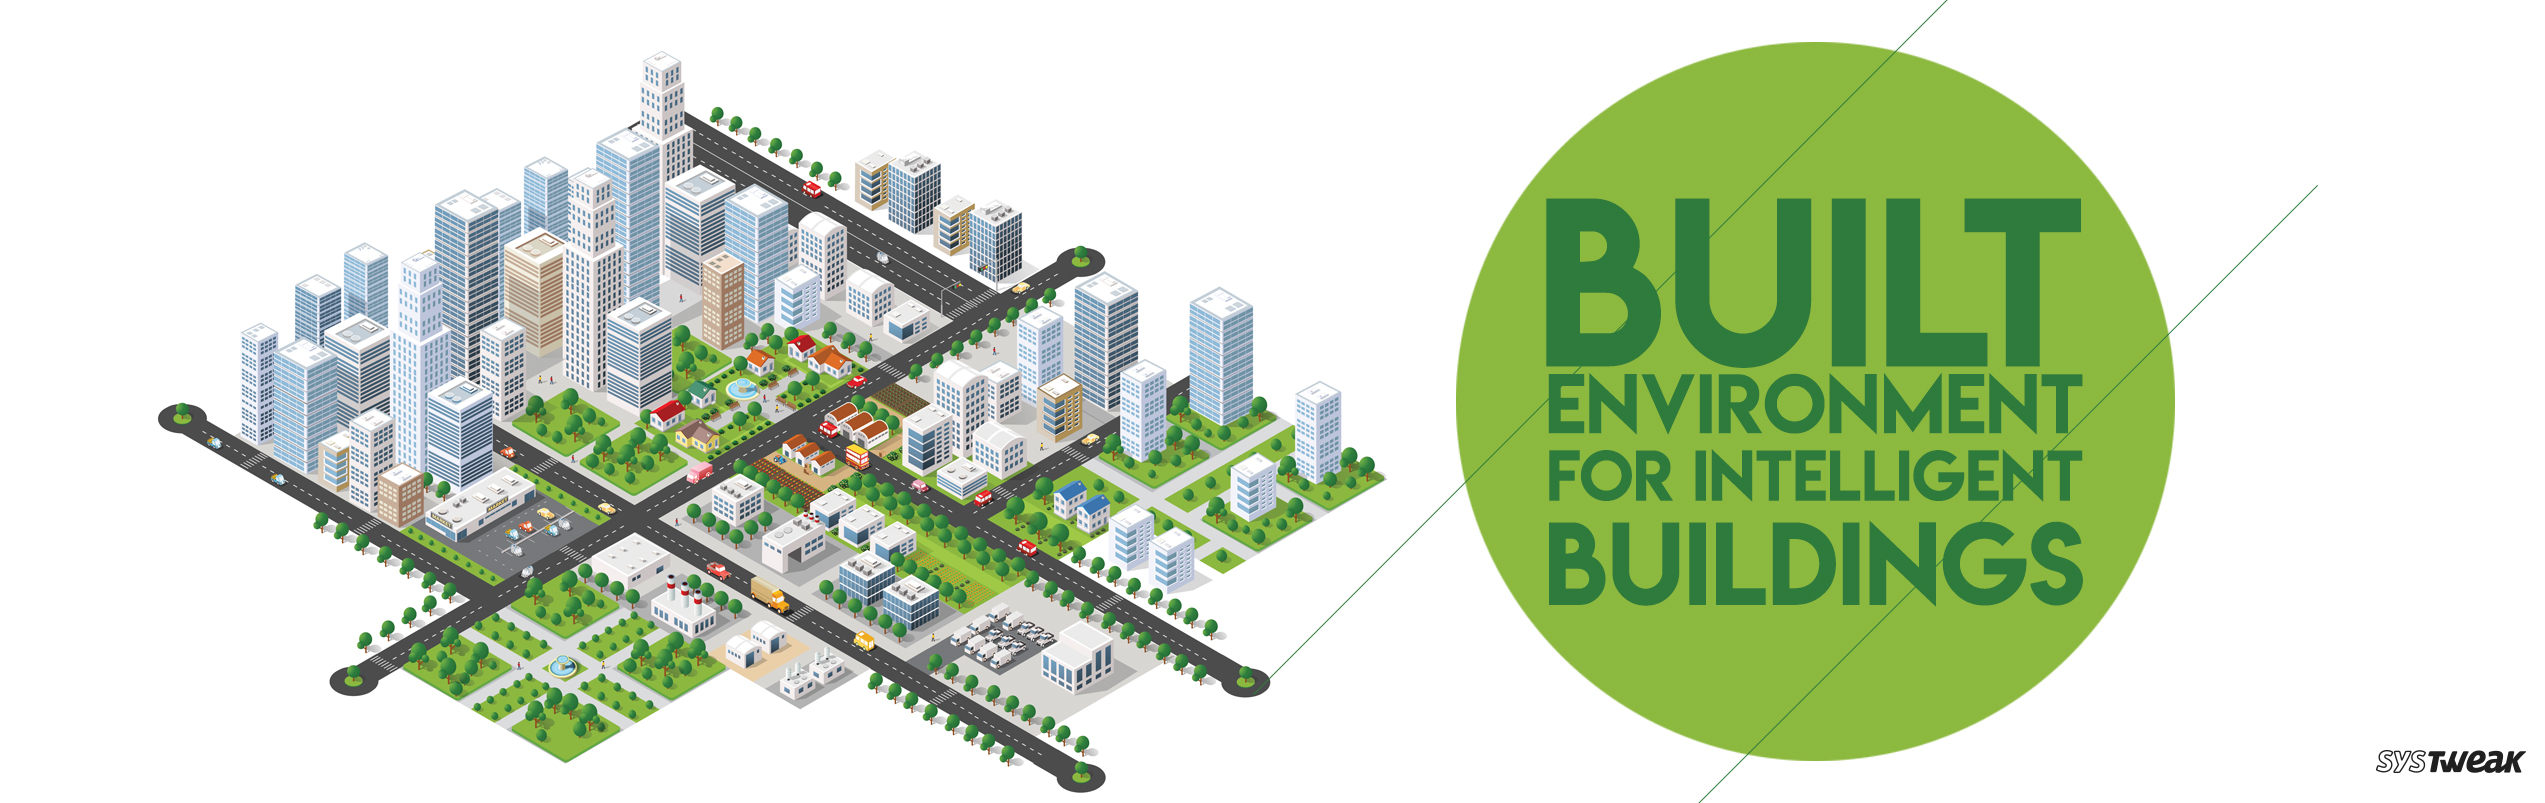 Drive the Future of Built Environment